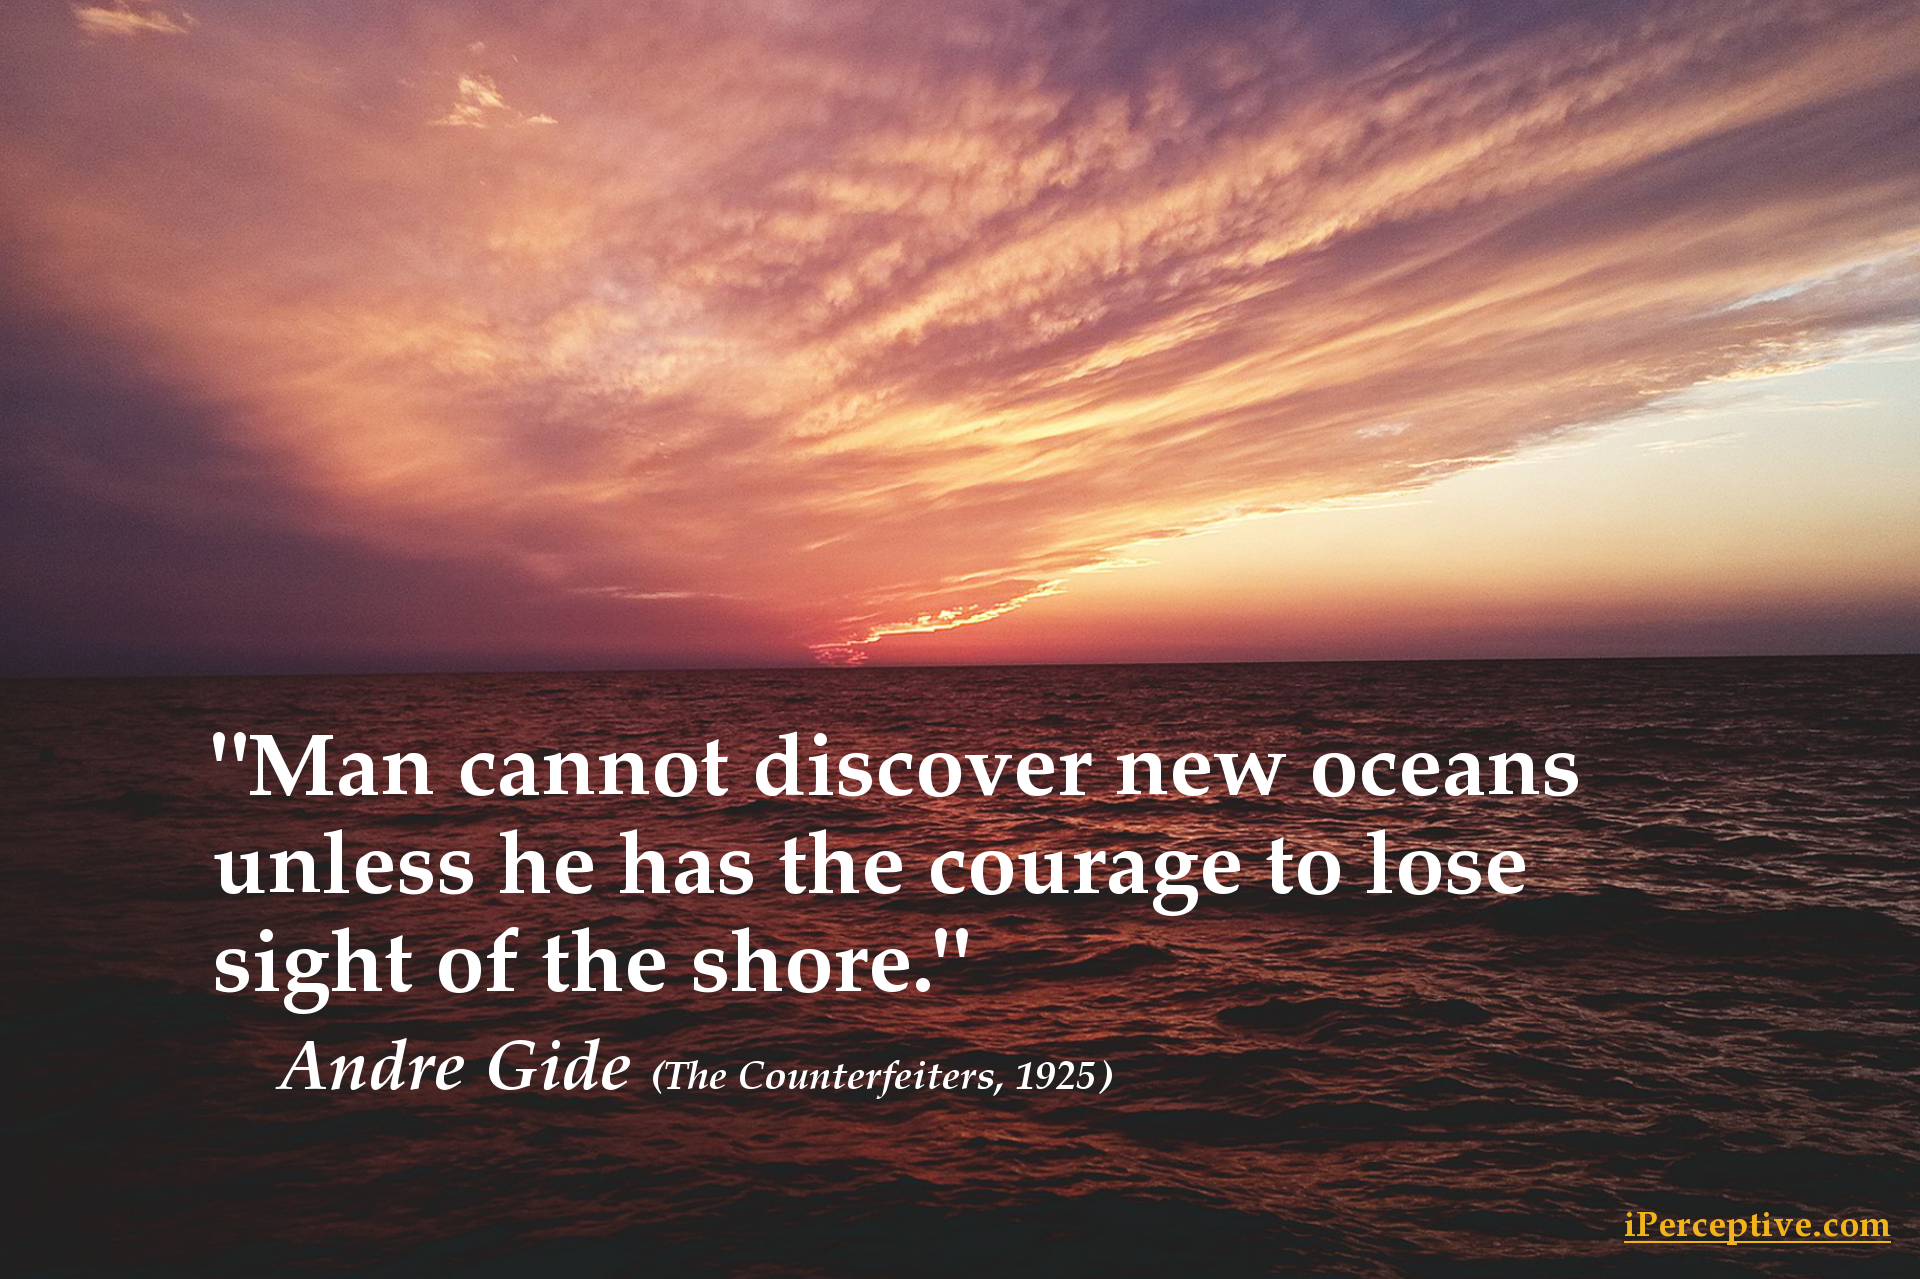 Andre Gide Quote: Man cannot discover new oceans unless he...